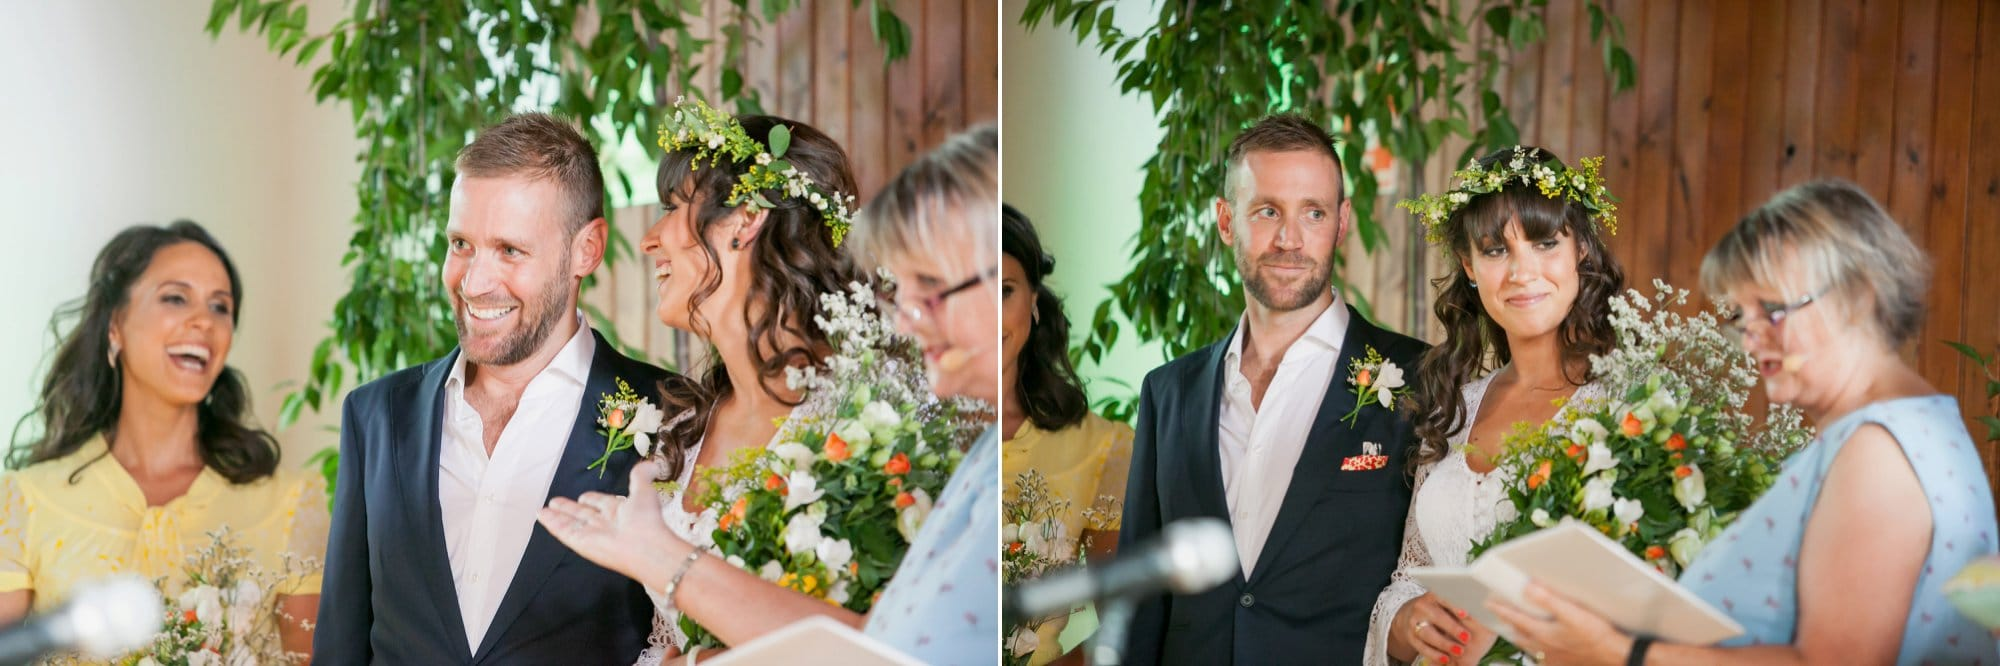 Melbourne_DIY_Scout_Hall_Cafe_Wedding_Photographer_42